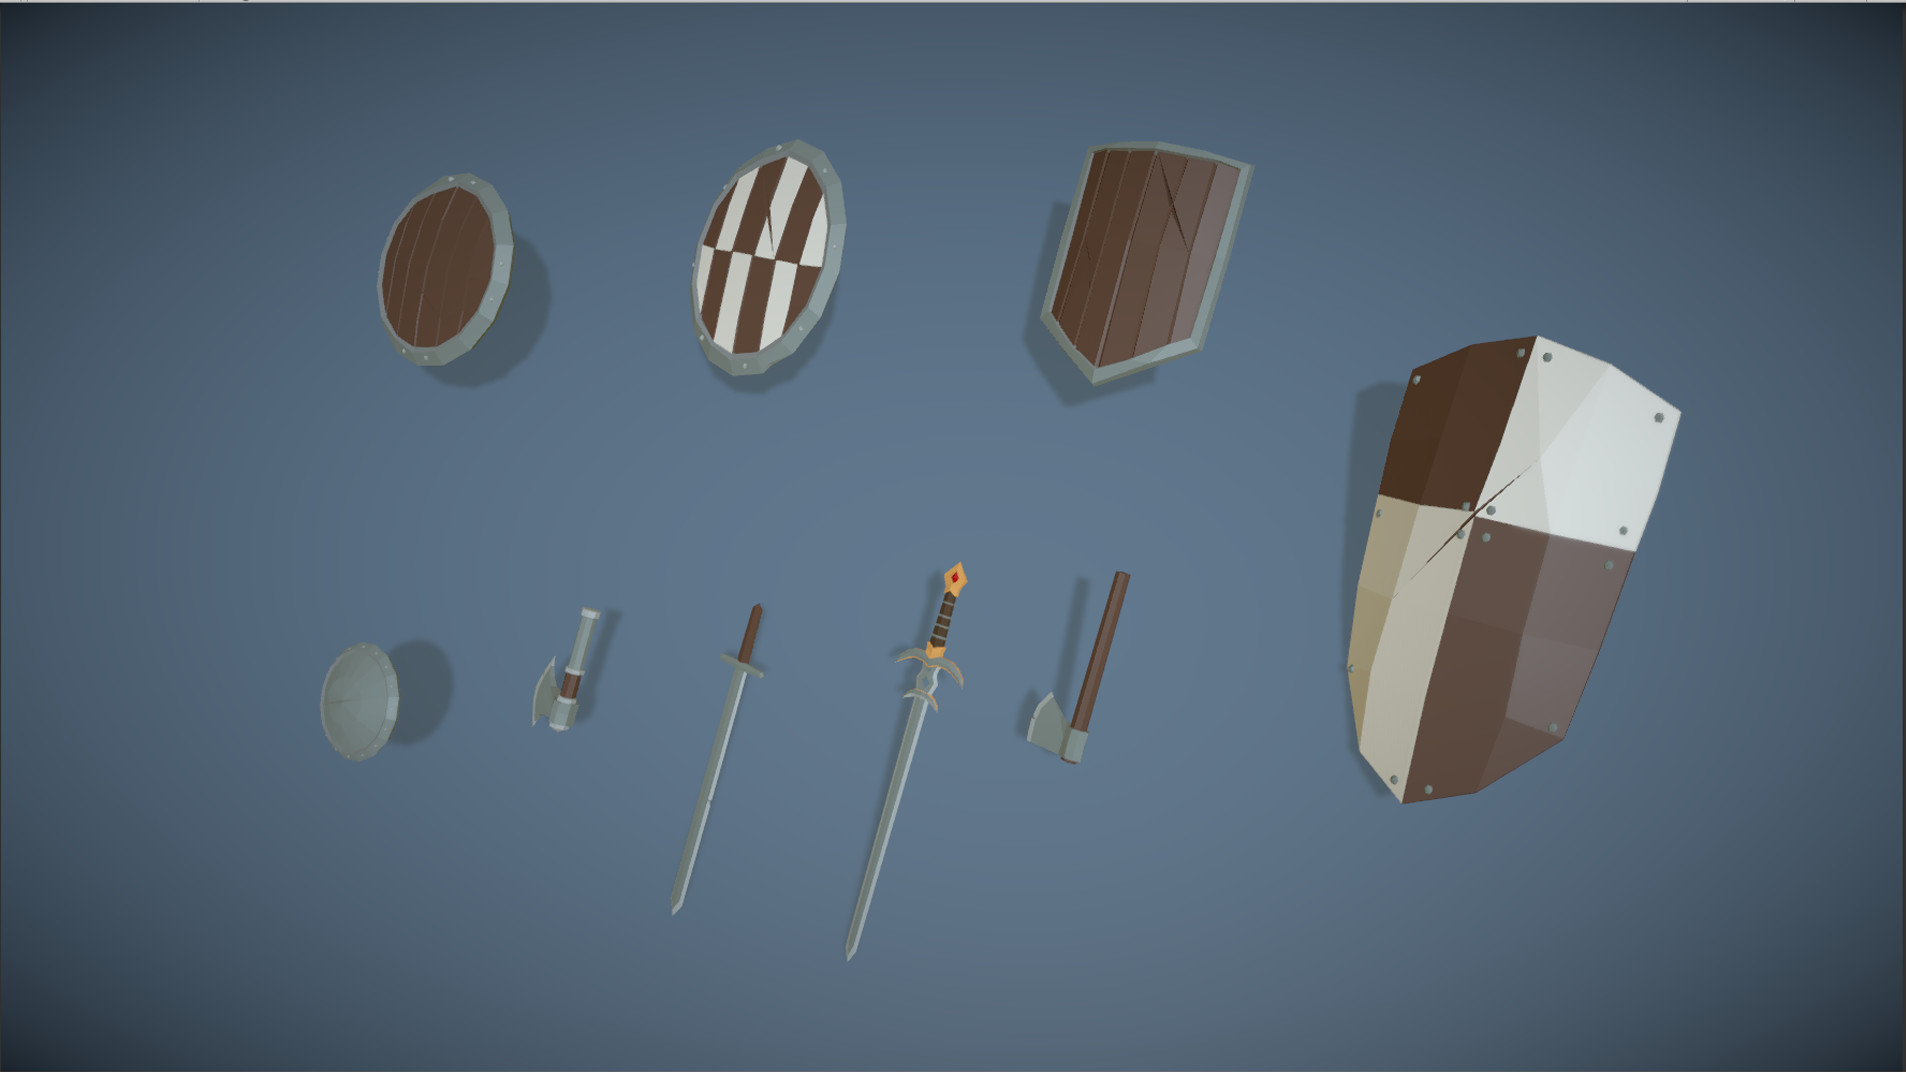 Polytope studio pt medieval lowpoly characters weapons 02